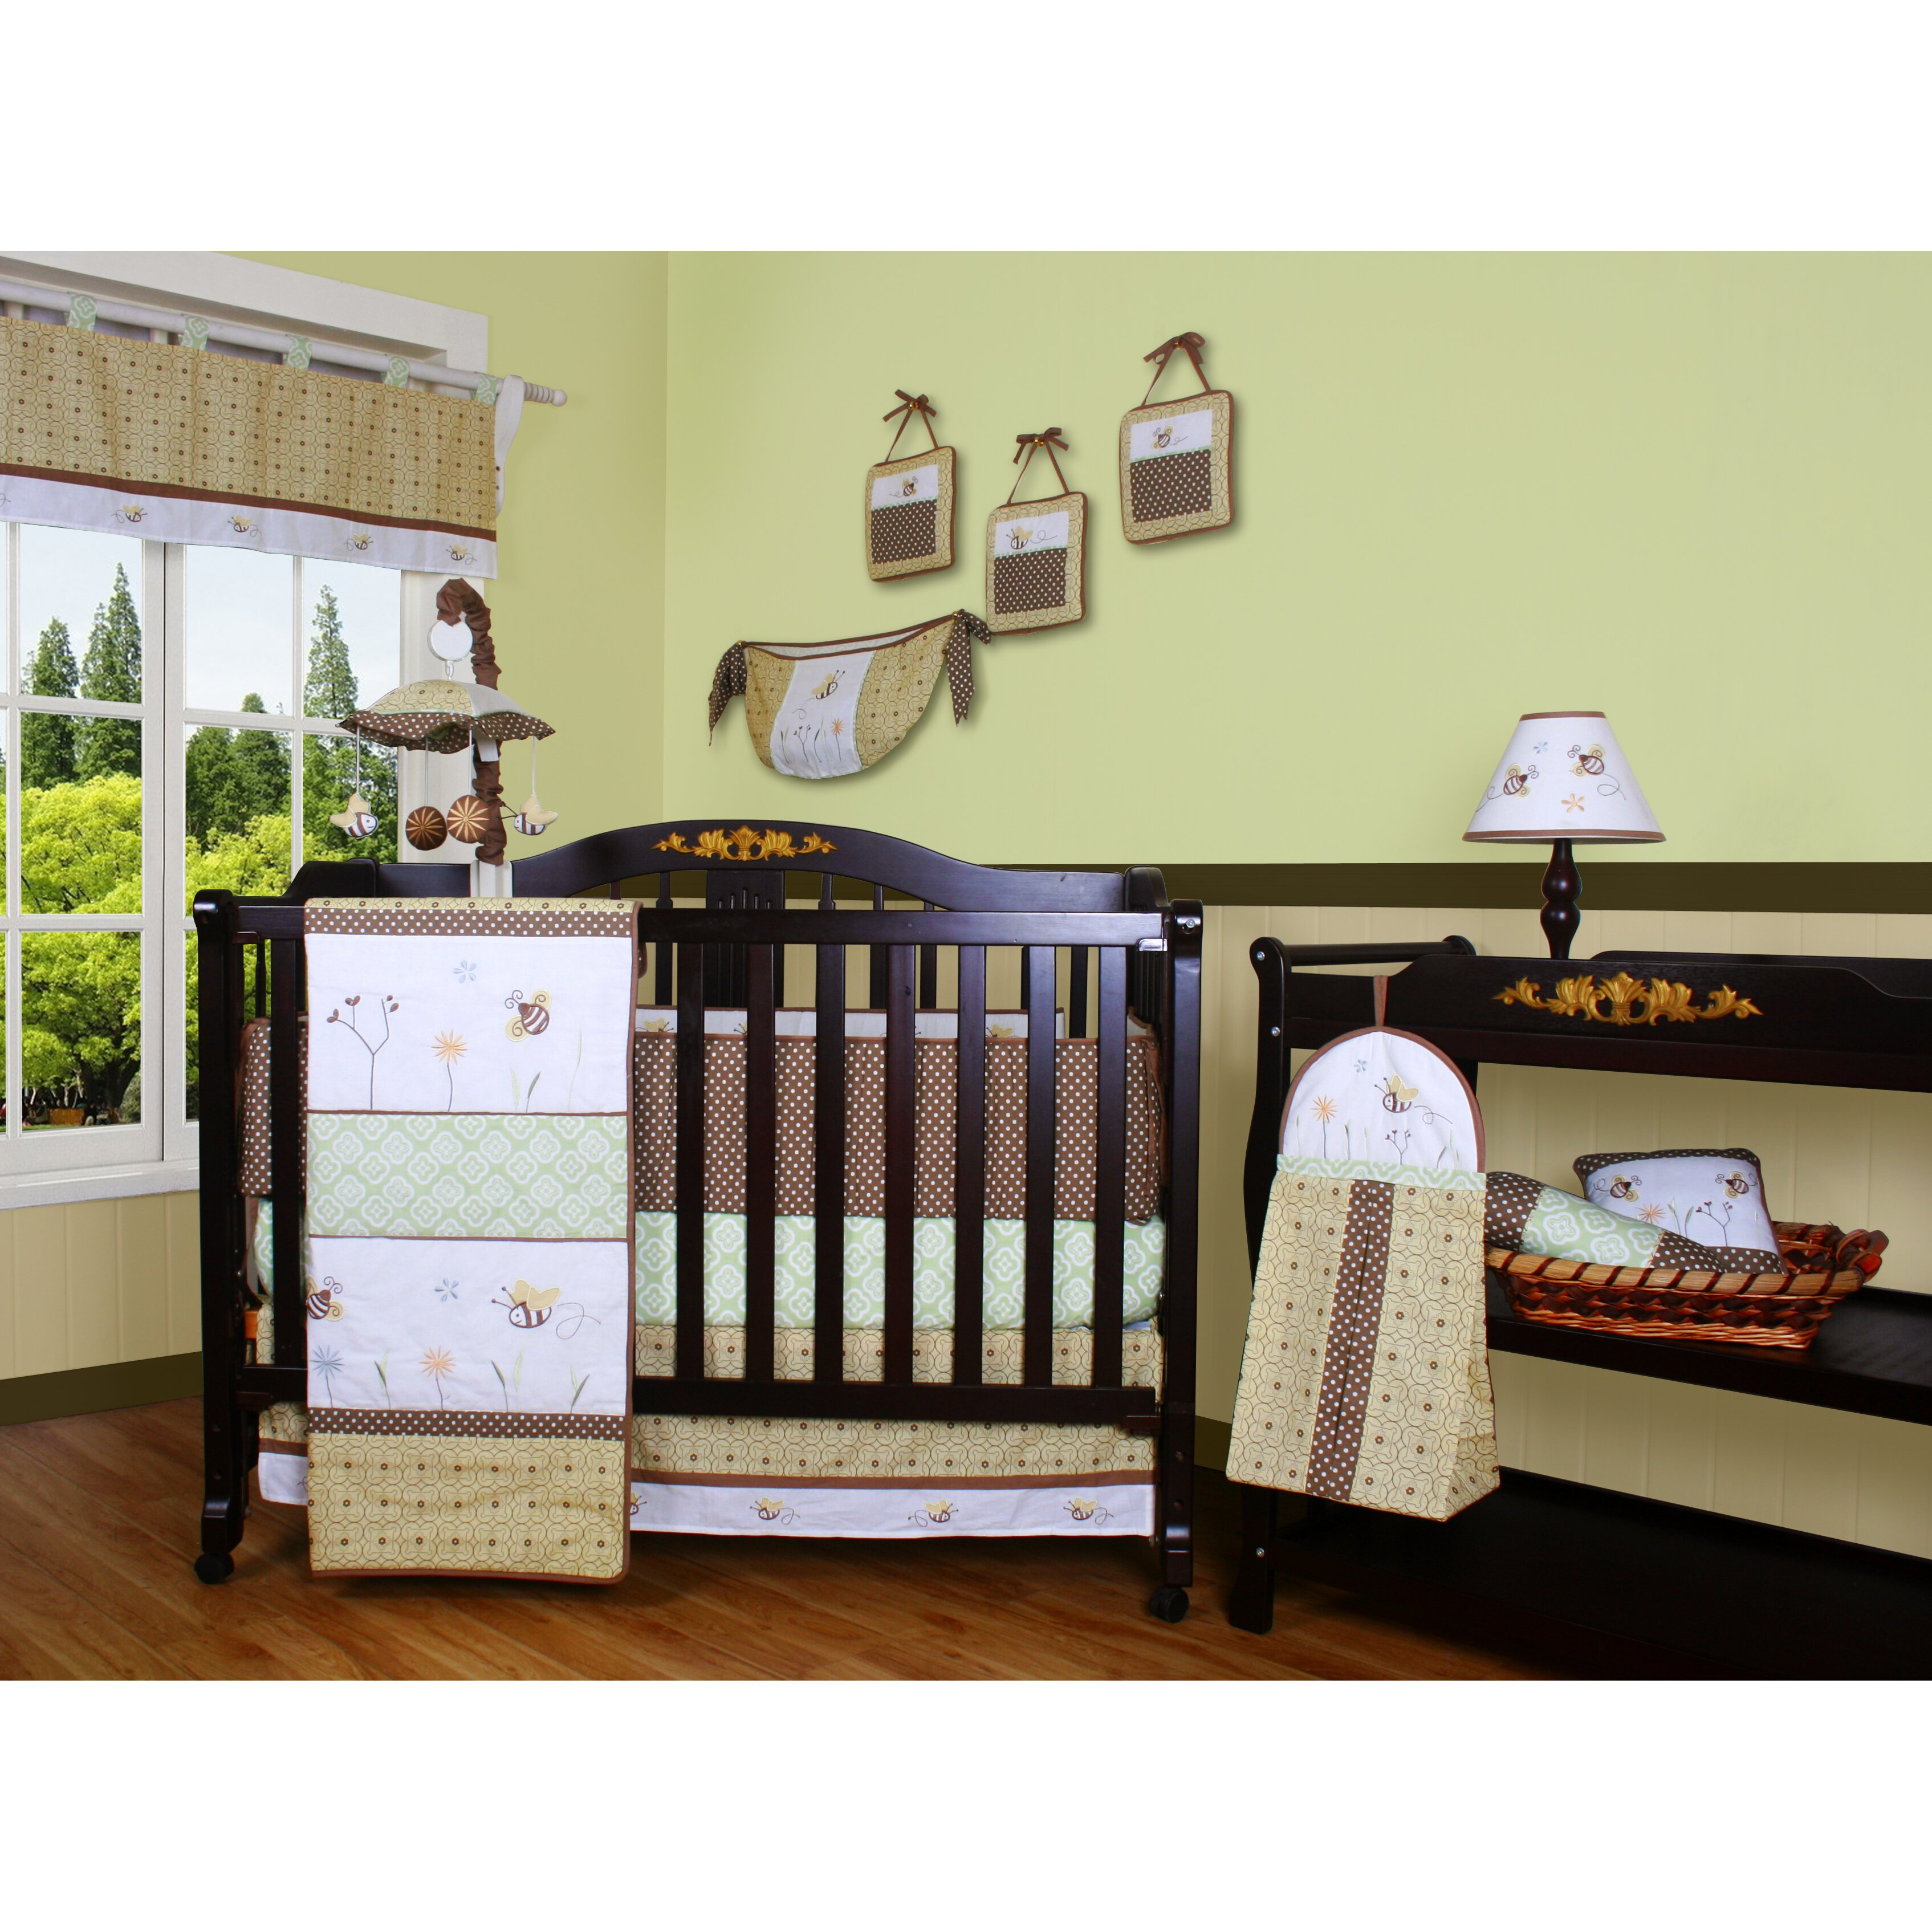 Geenny boutique bumble bee 13 piece crib bedding set reviews wayfair - Geenny crib bedding sets ...